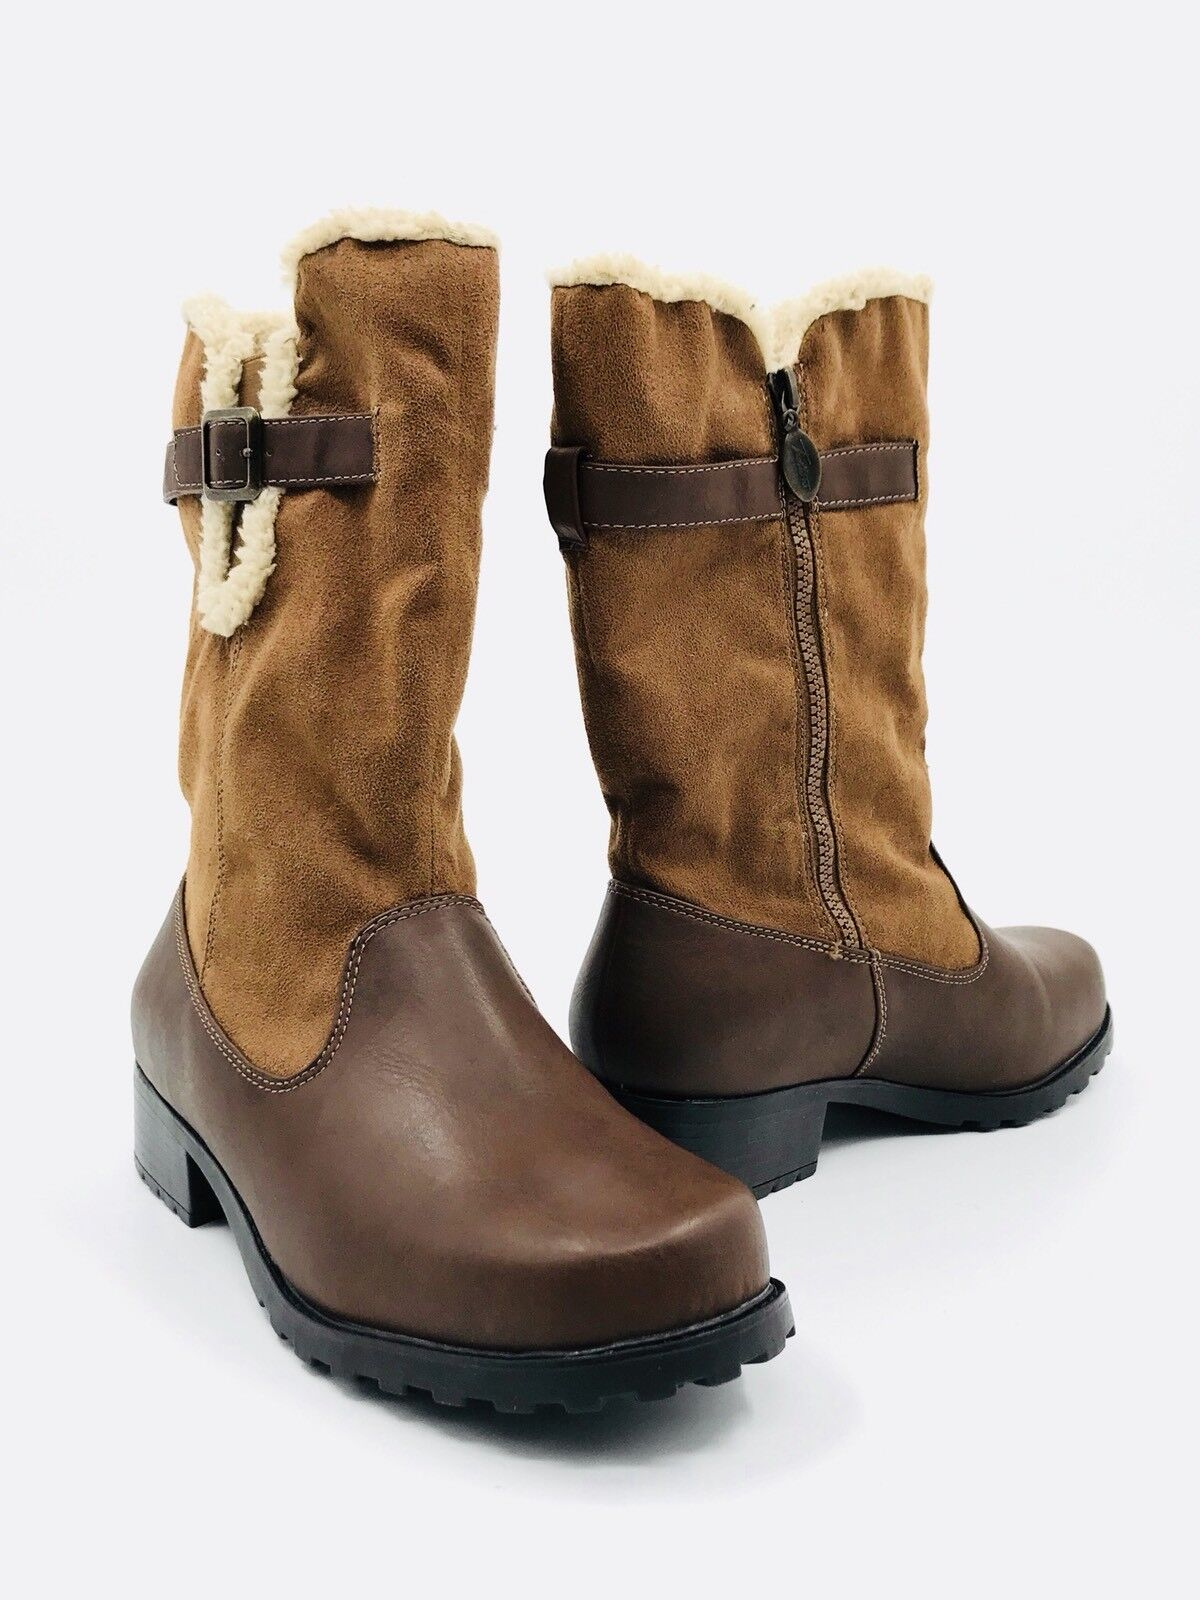 Tredters Blizzard III Faux Shearling Brown Boot Women's Size 8.5